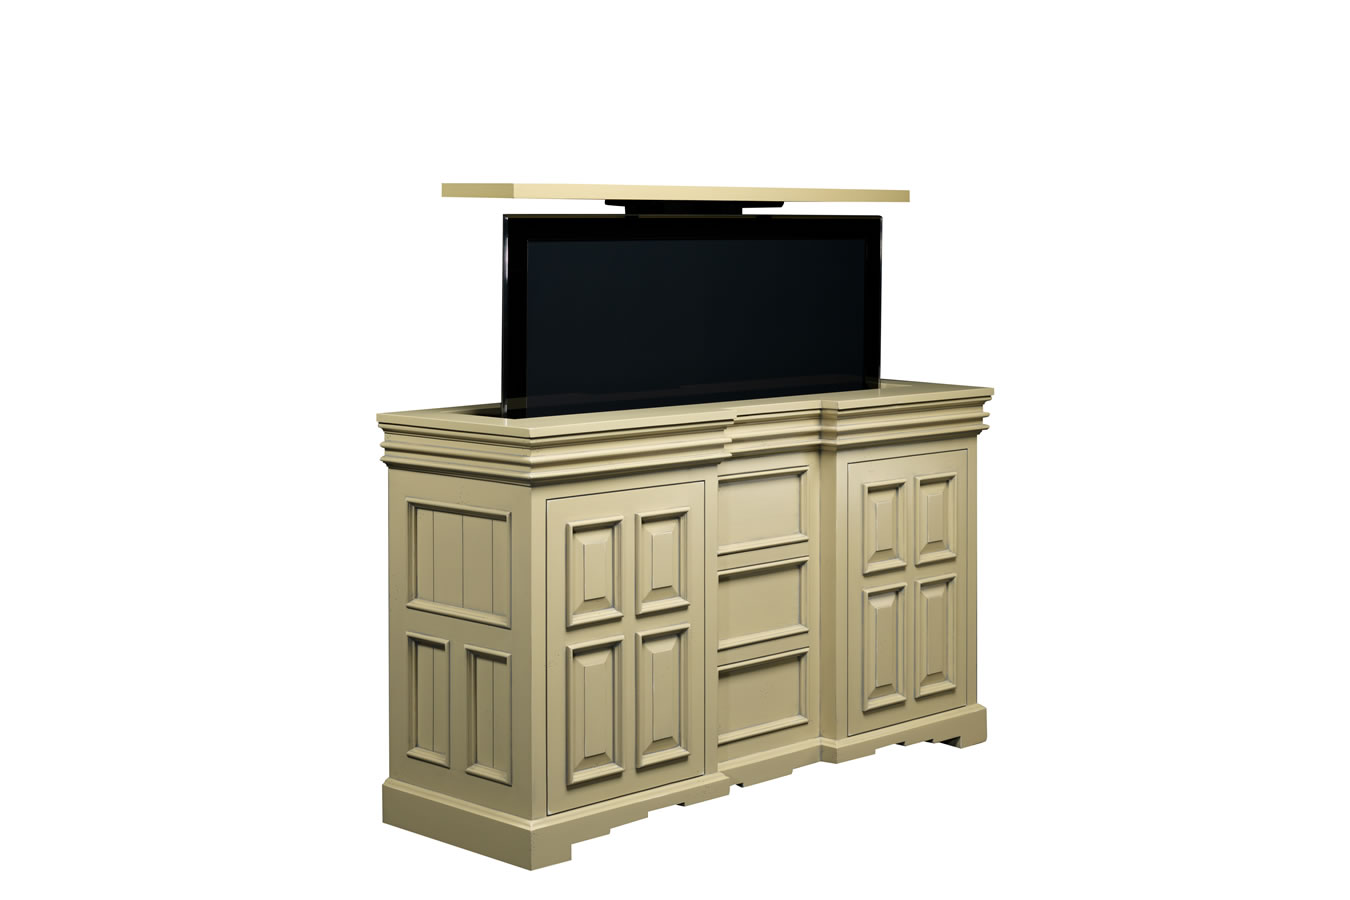 cordova furniture with hidden flat screen cabinet tronix ForTv Cabinets Hidden Flat Screens